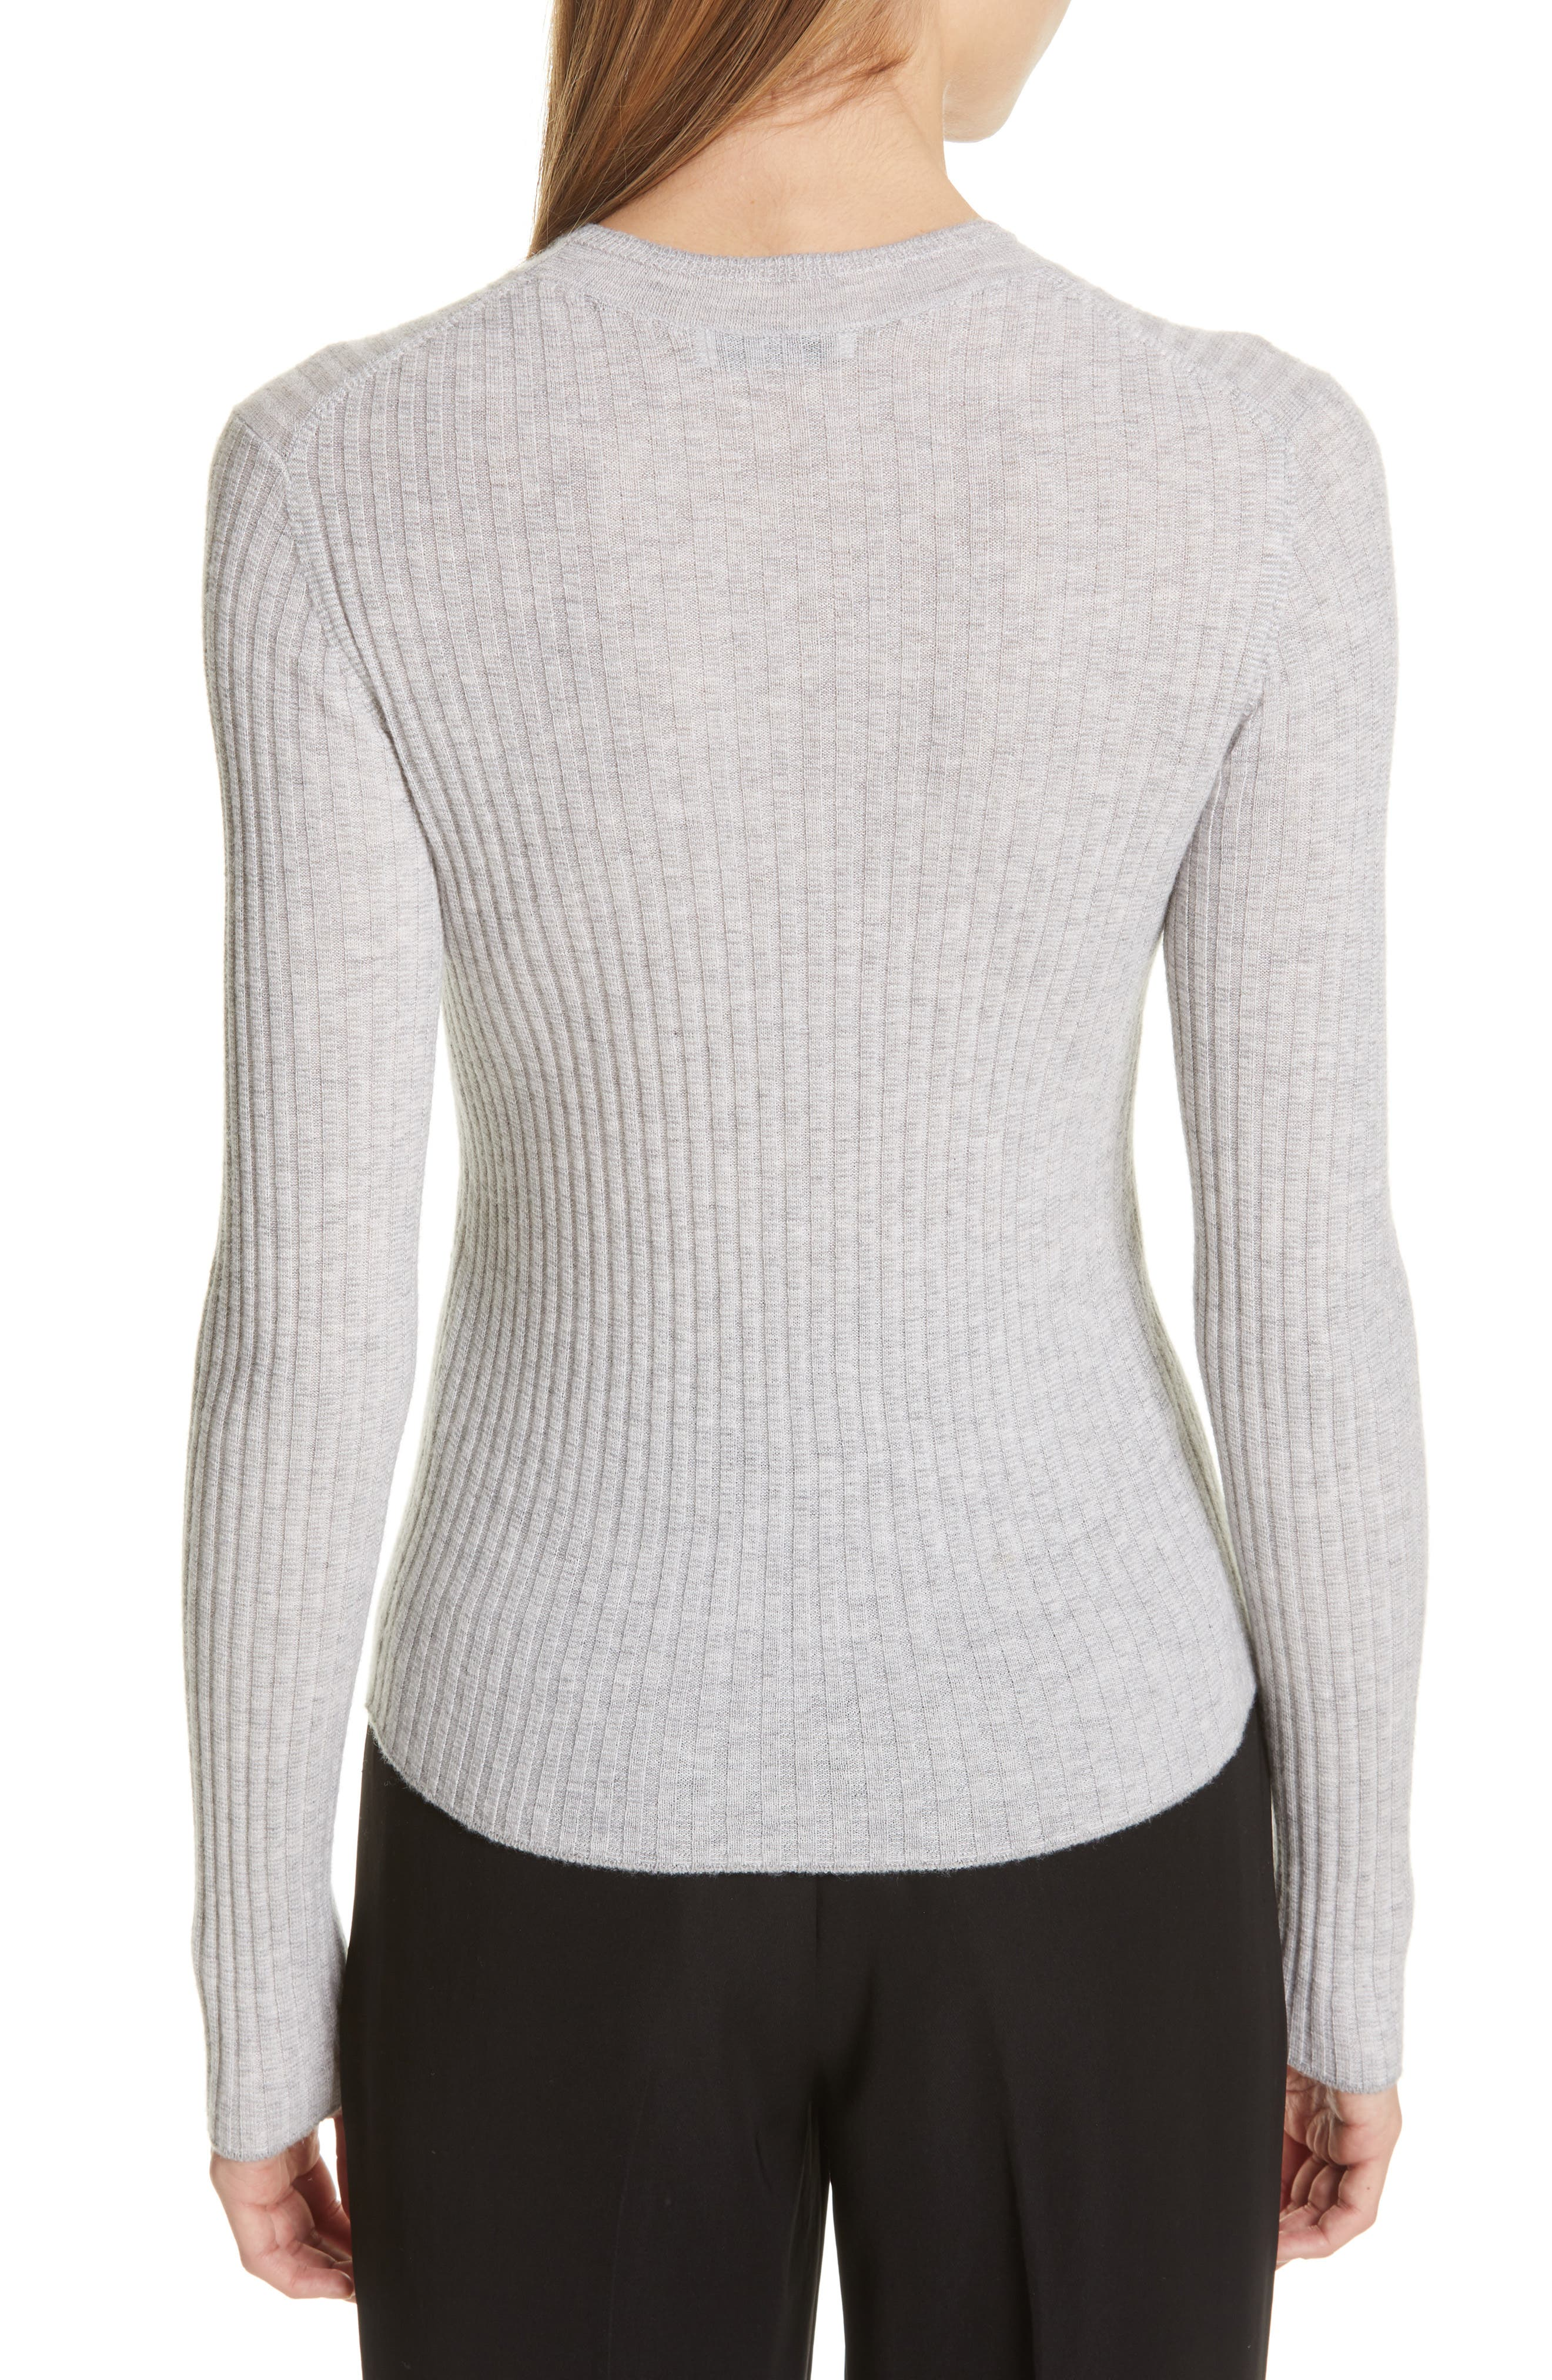 Mixed Rib Stitch Sweater,                             Alternate thumbnail 2, color,                             H STEEL/ OFF WHITE